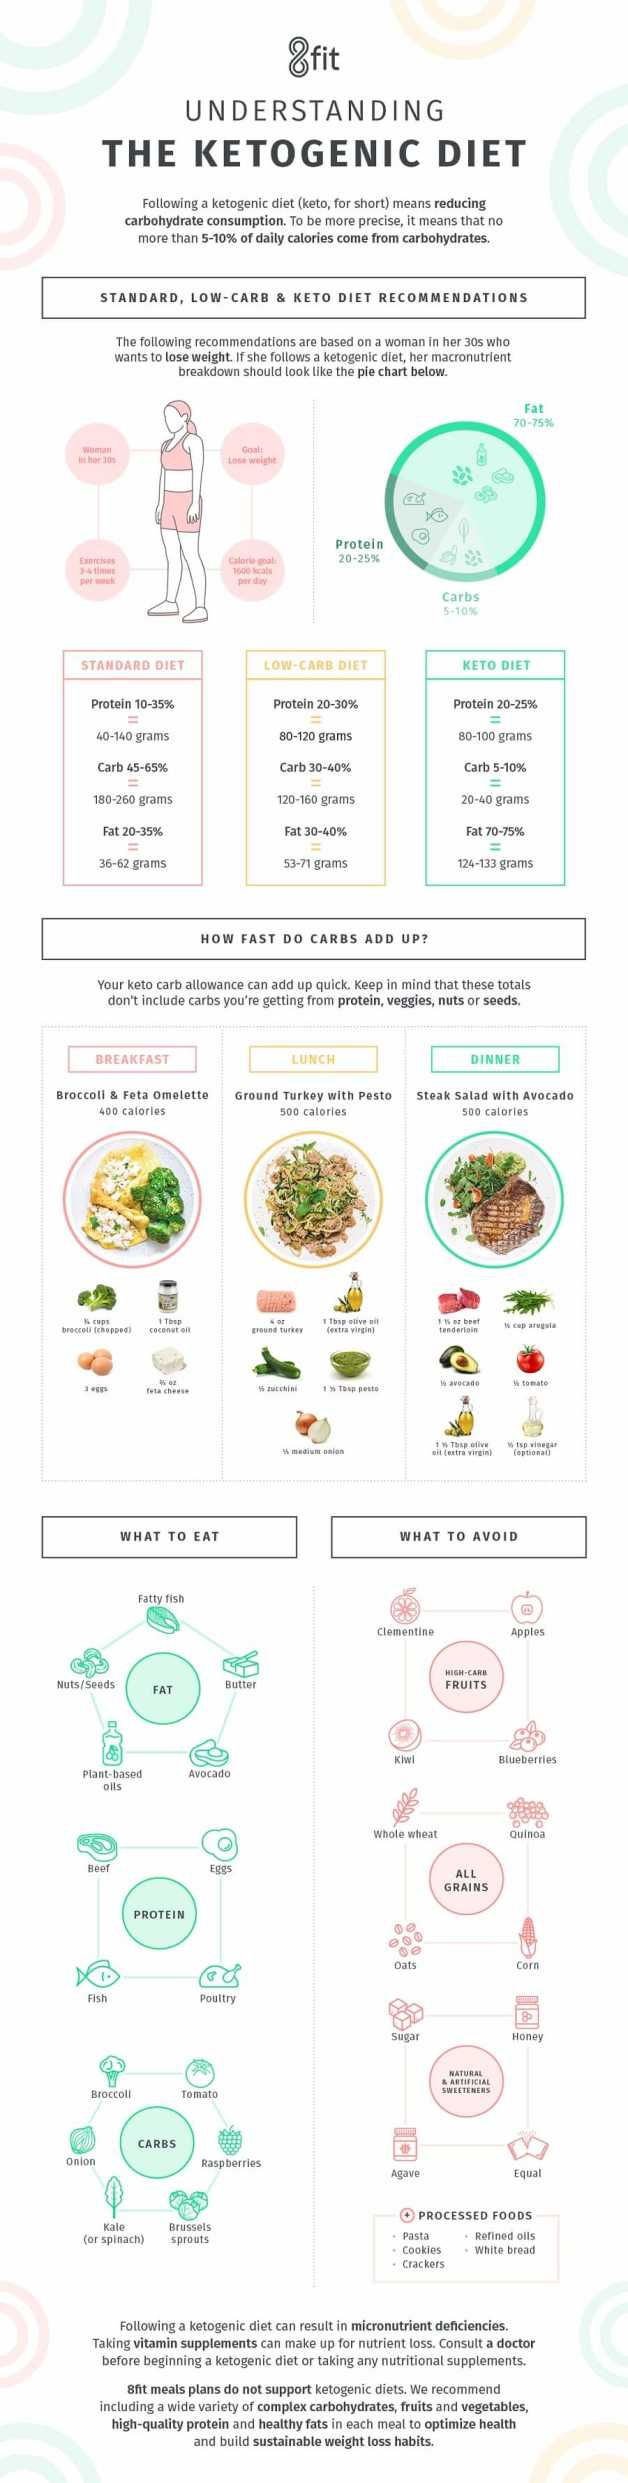 Understanding Ketogenic Diet Infographic